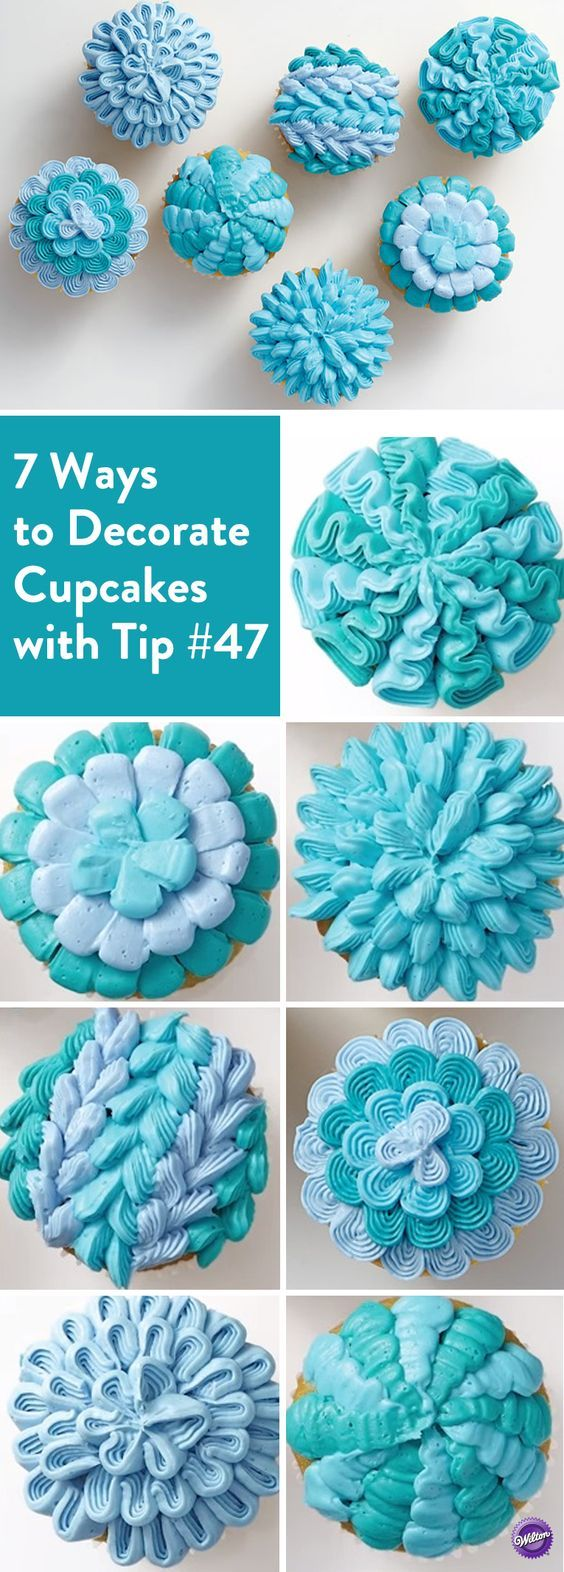 7 Ways to Decorate Cupcakes with Tip #47 -- www.cakecoachonline.com - sharing...